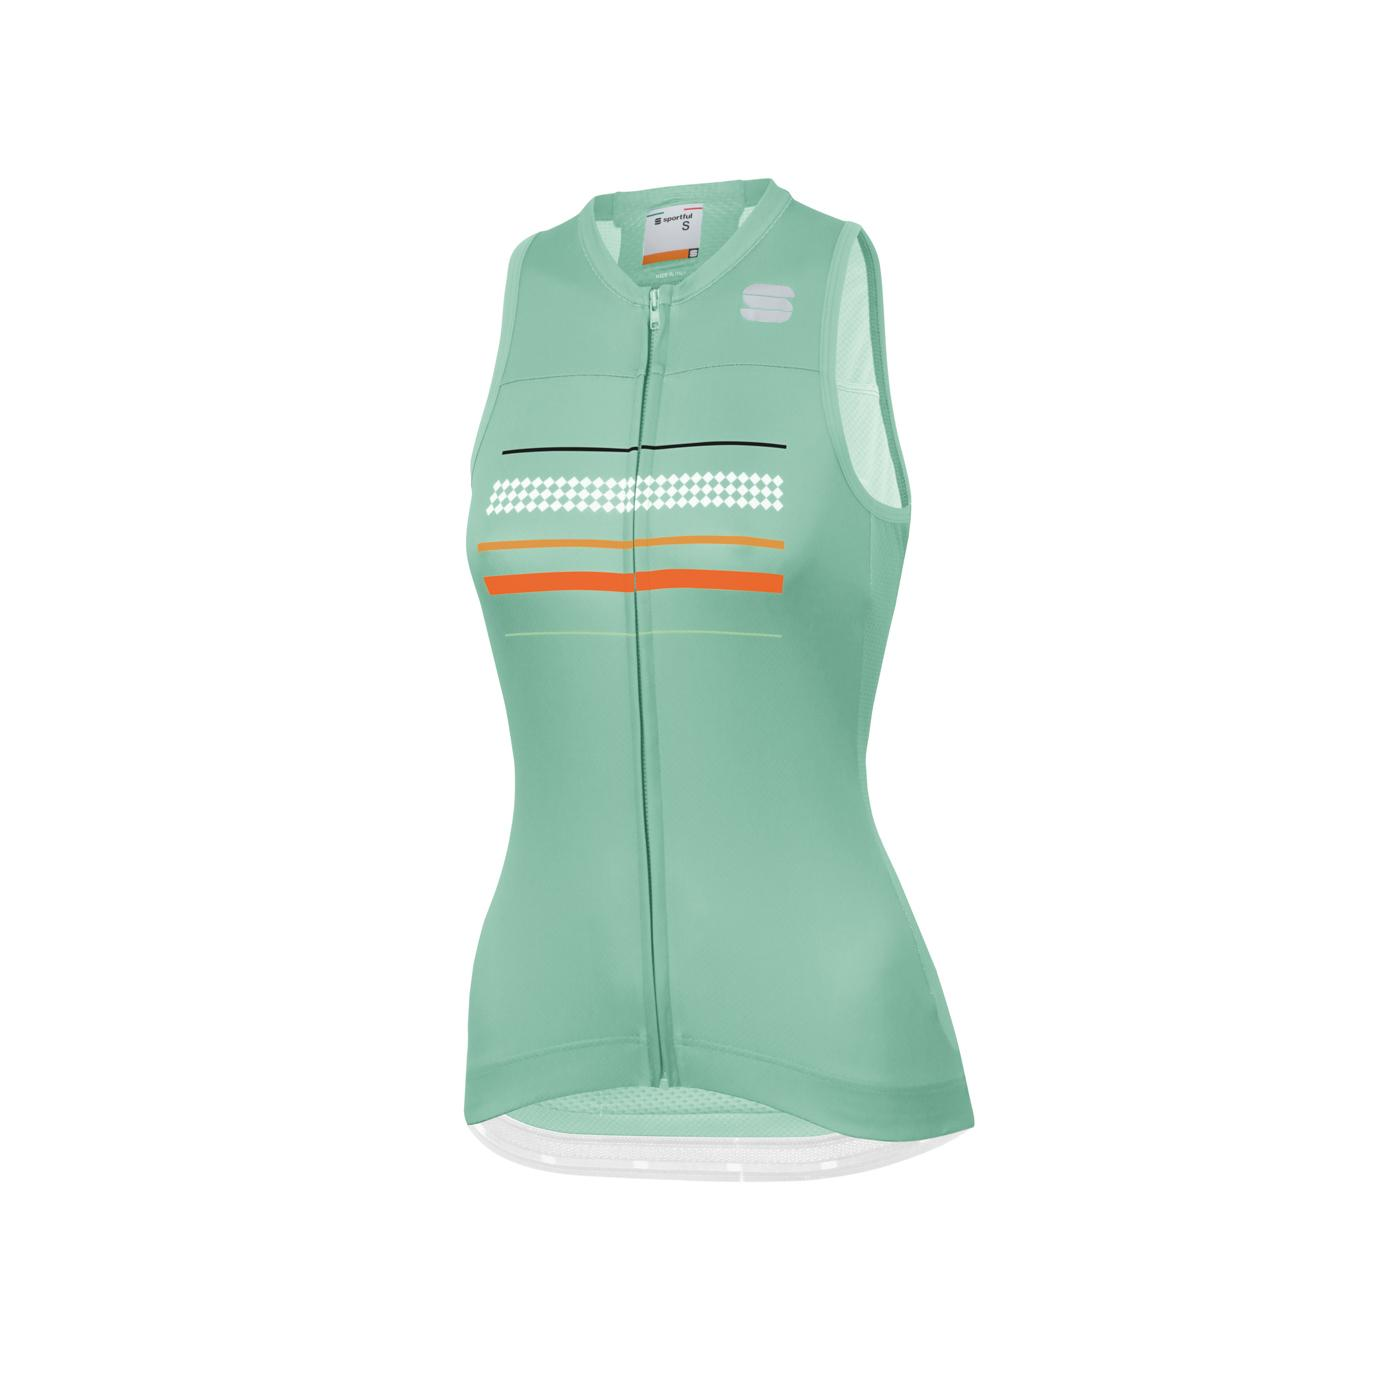 | Sportful Fietsshirt Mouwloos voor Dames Mint - SF Diva W Sleeveless Jersey-Milk Mint